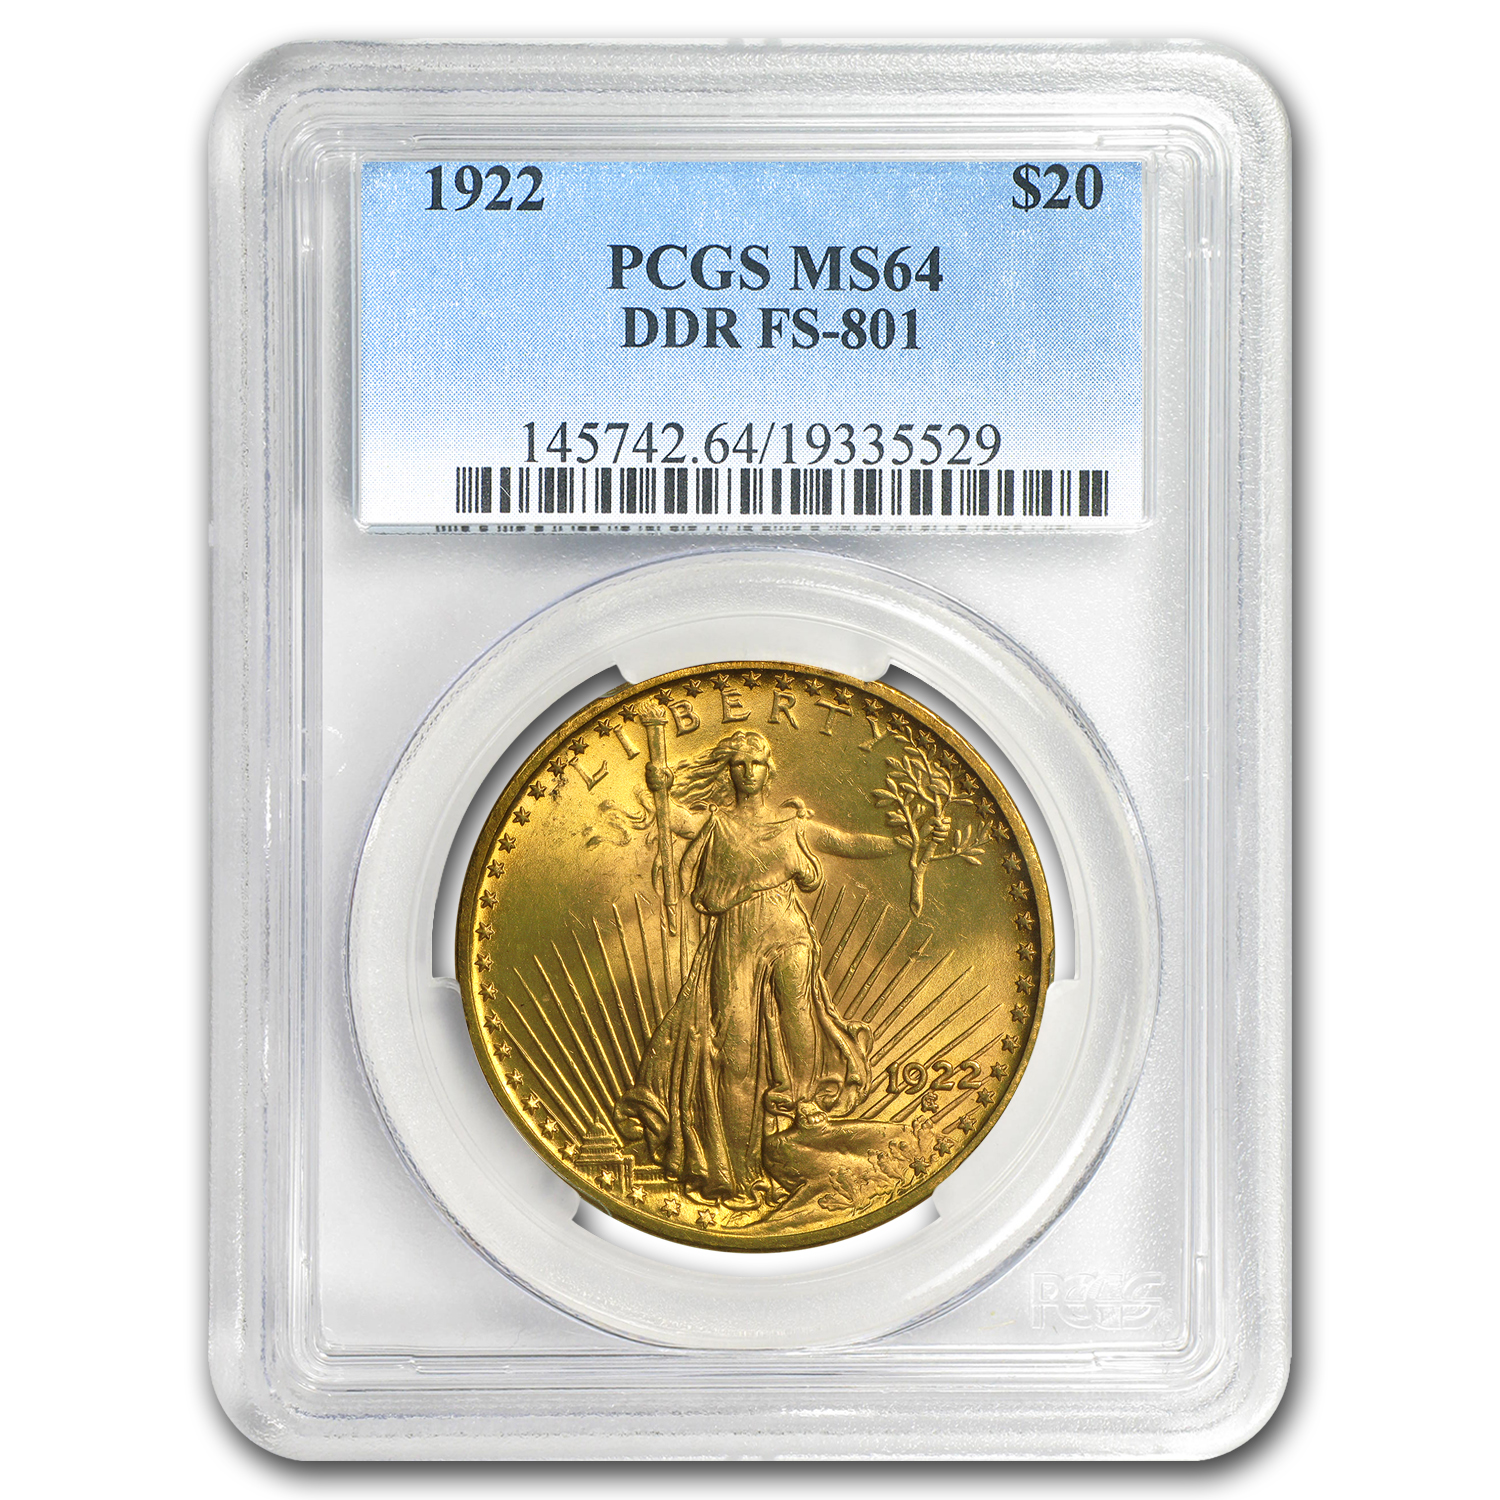 1922 $20 St. Gaudens Gold Double Eagle MS-64 PCGS (DDR FS-801)